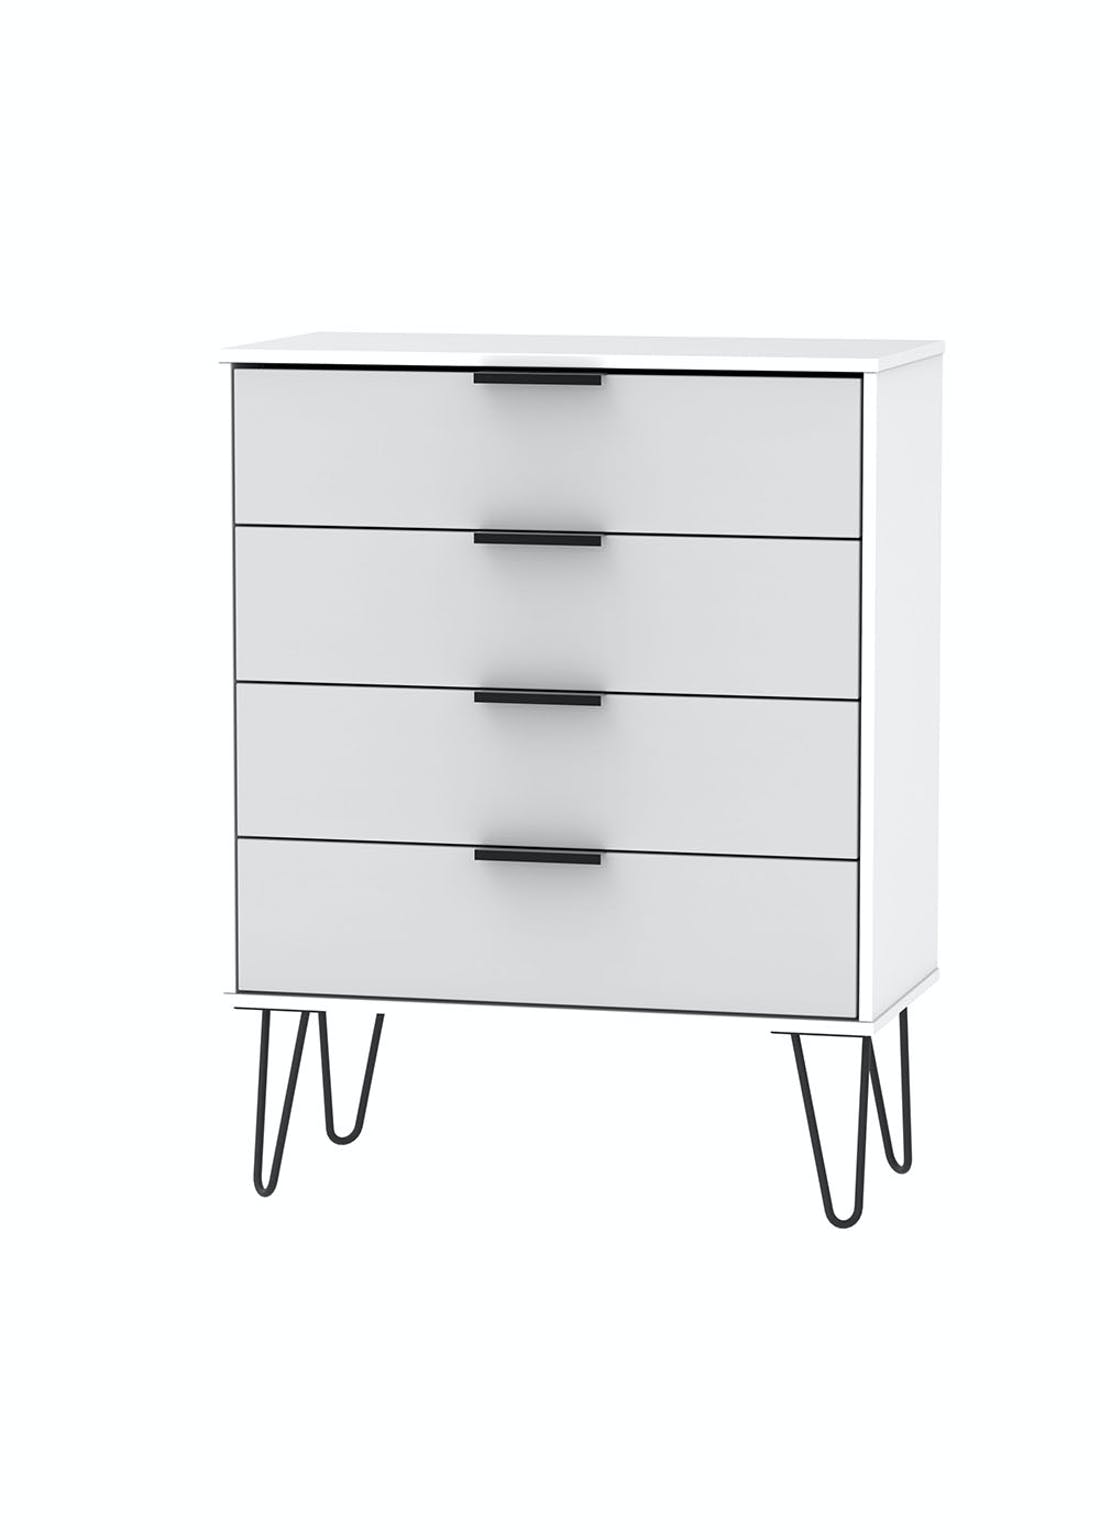 Swift Milano 4 Drawer Chest (91cm x 76.5cm x 39.5cm)